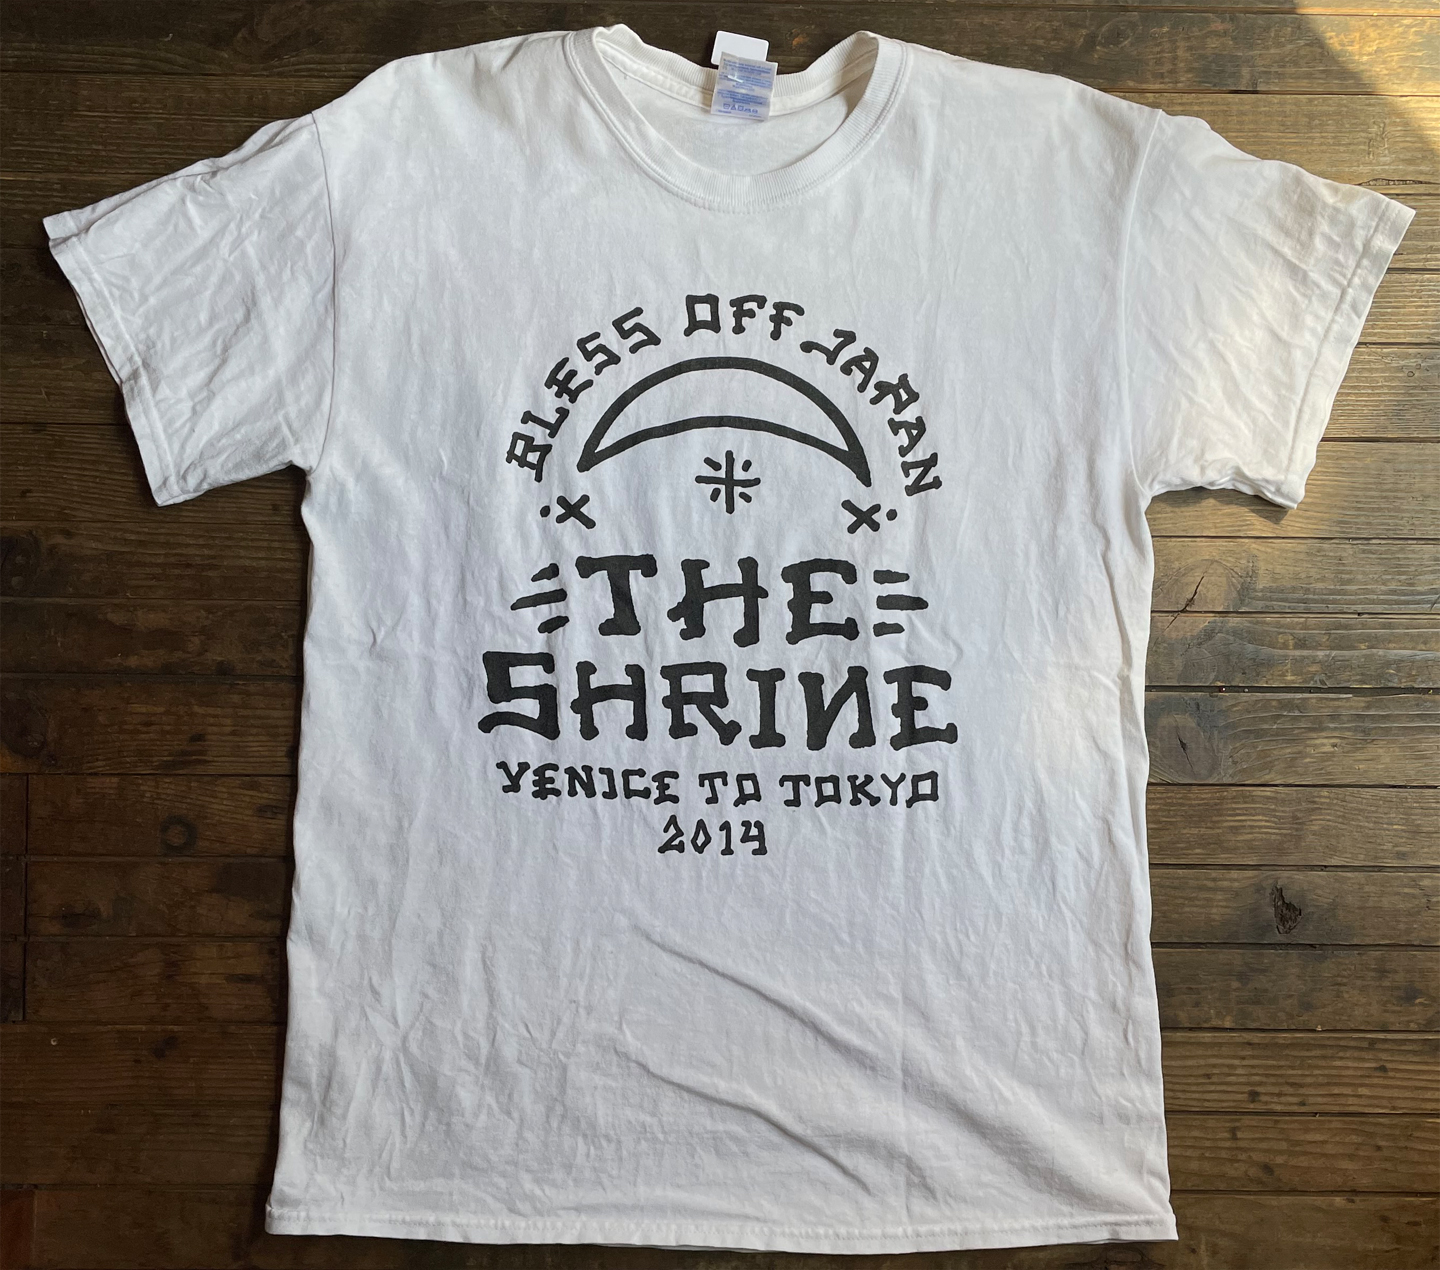 USED! THE SHRINE Tシャツ TOUR